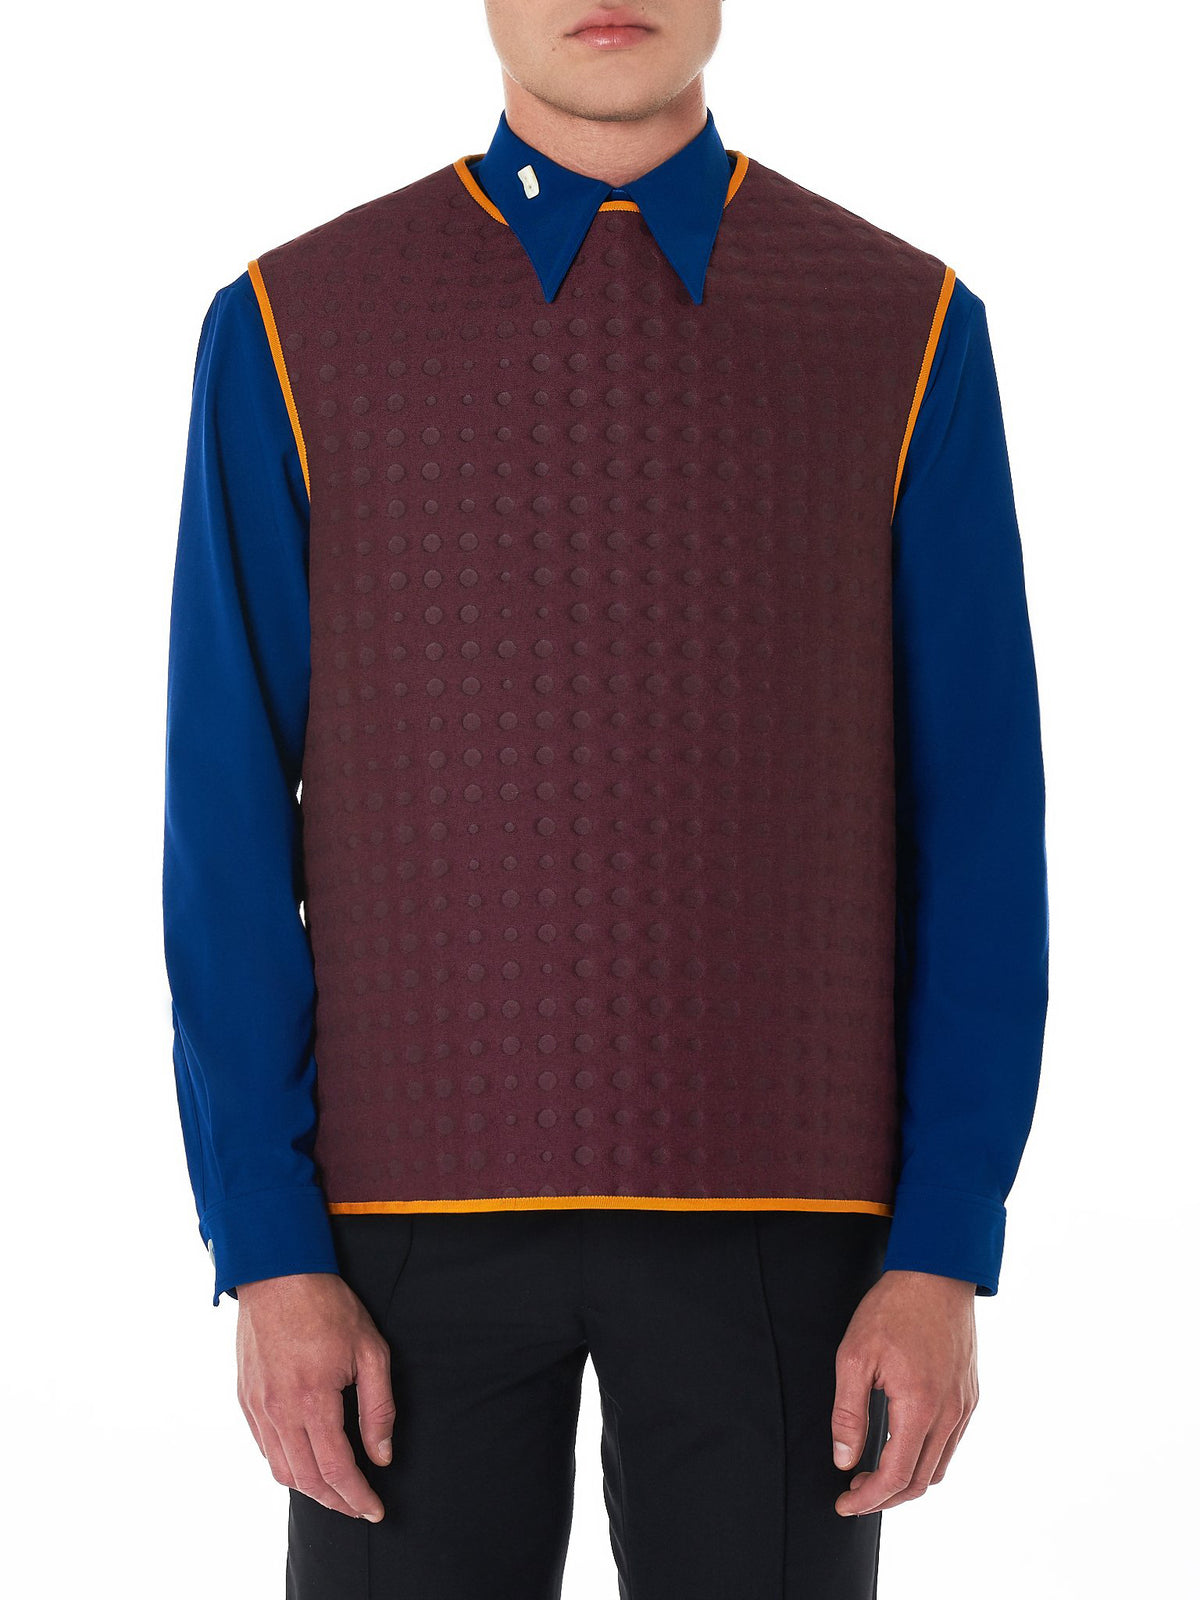 Dotted Throw Over Vest (0203NW18-BURGUNDY)